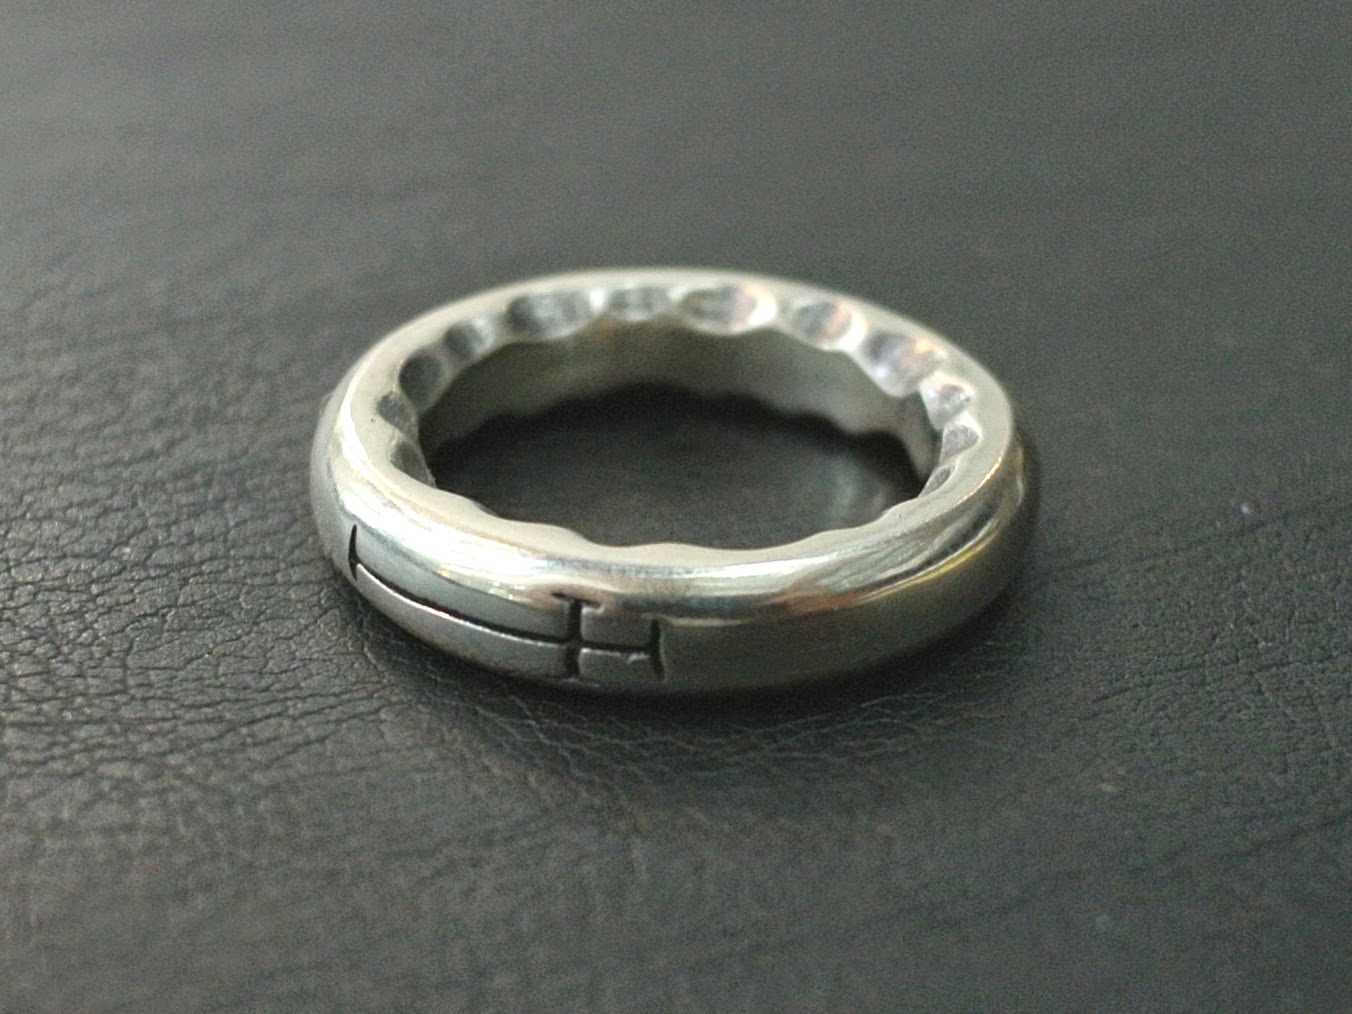 Dress Code Silver - Pinkie ring suggestions